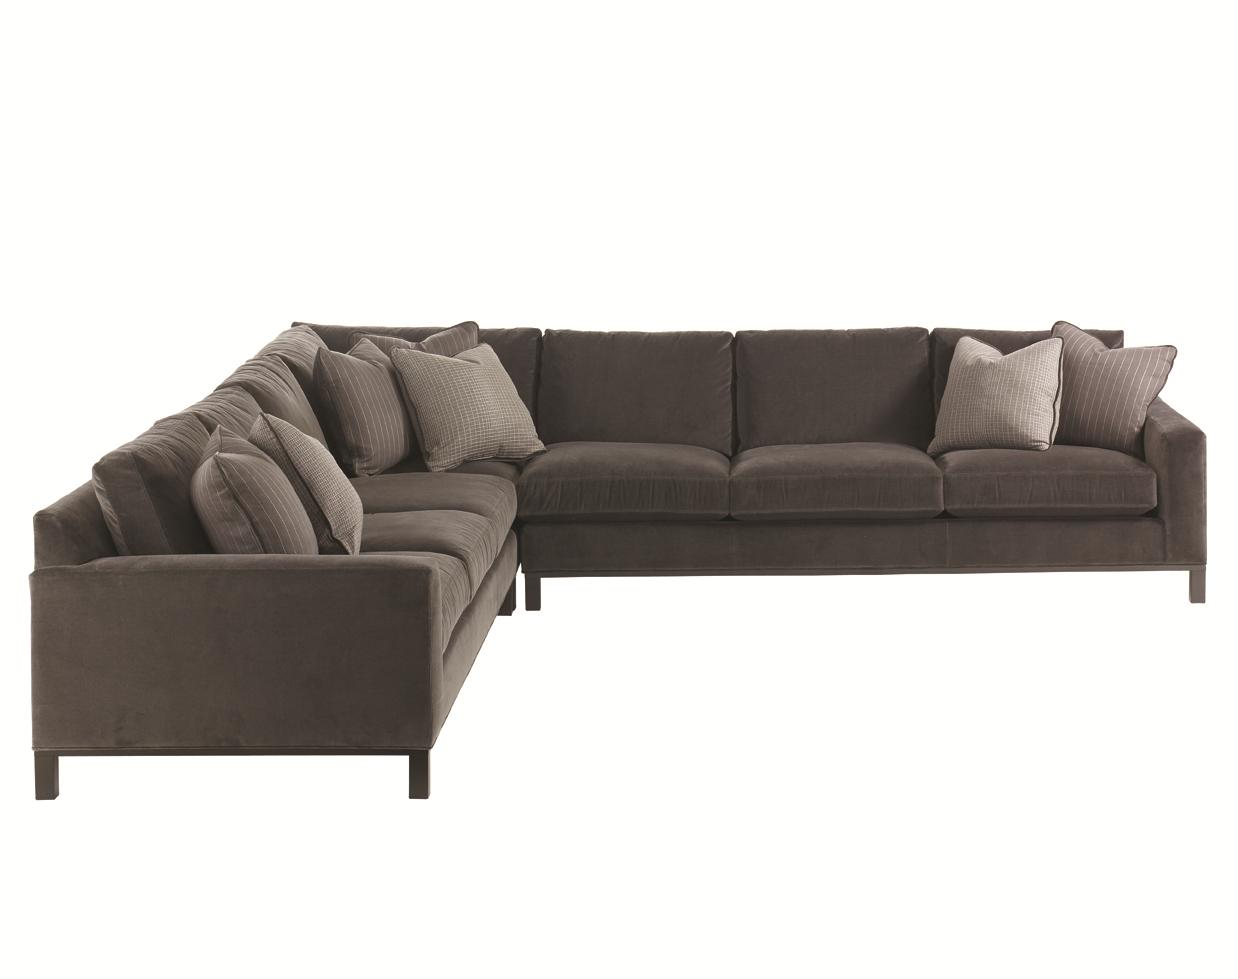 Sectional sofas store jacksonville furniture mart for Sectional sofa jacksonville